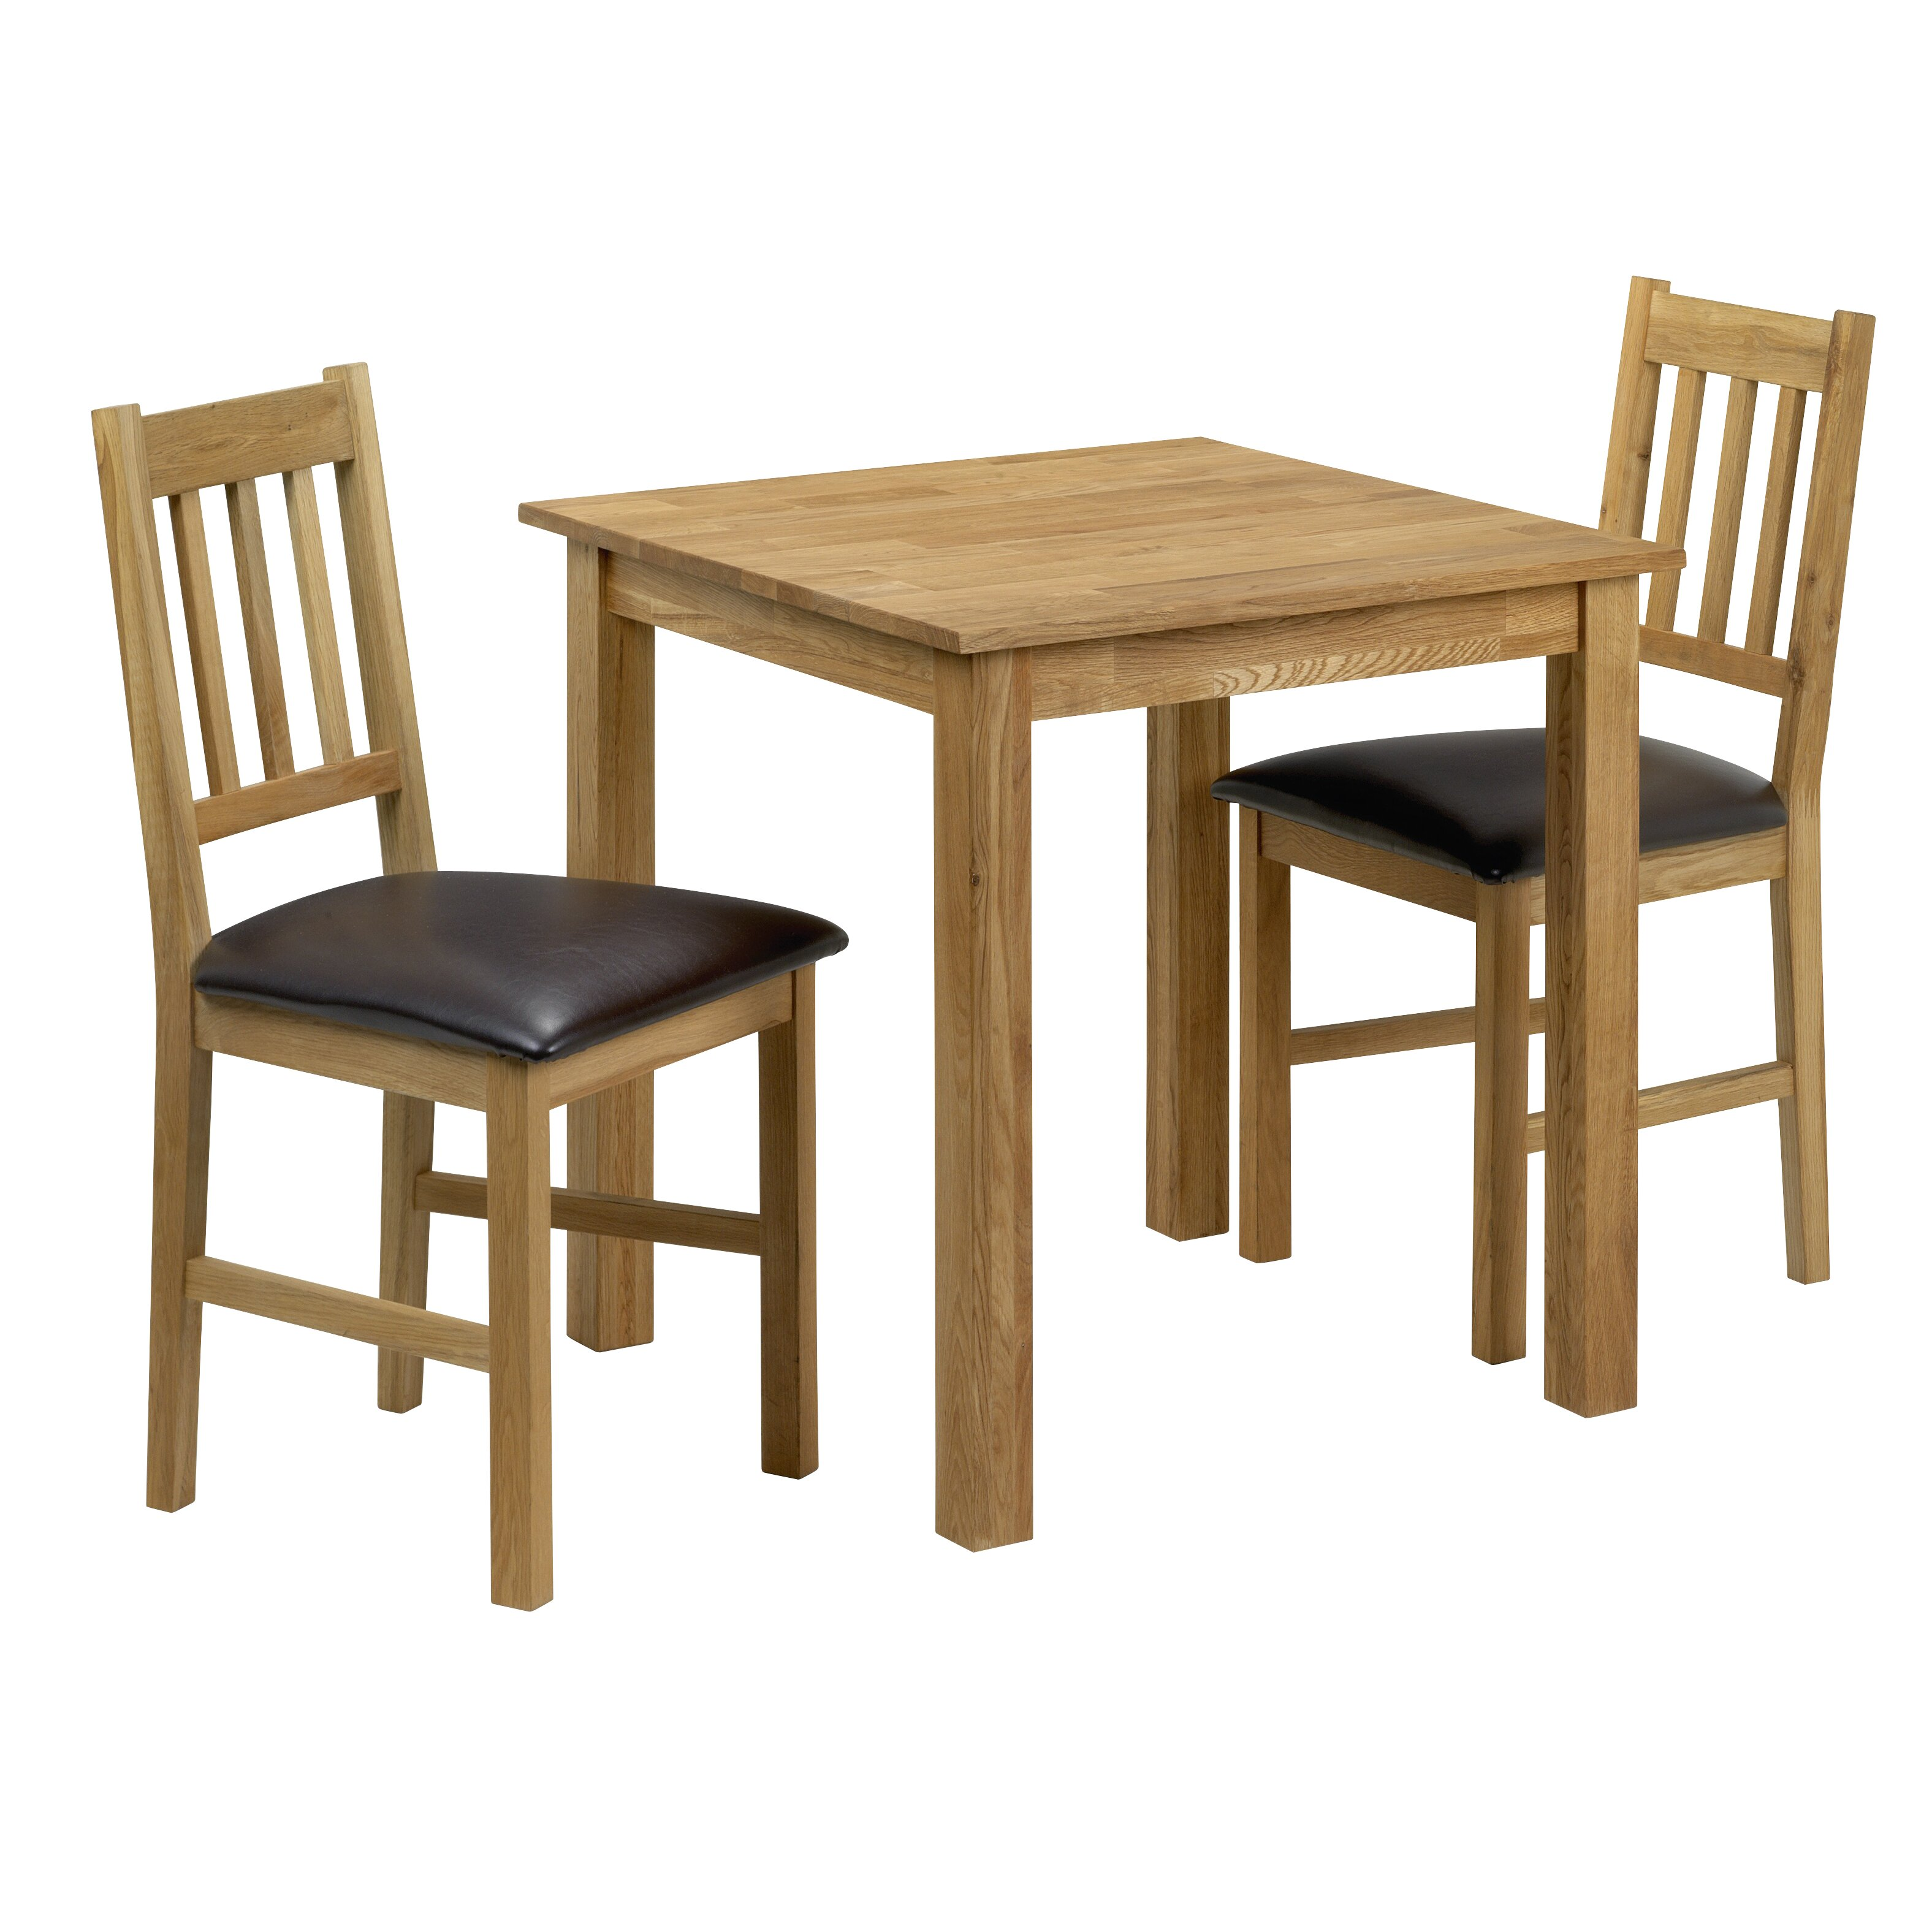 Small Kitchen Table 2 Chairs Small Kitchen Table And 2 Chairs Uk Best Kitchen Ideas 2017